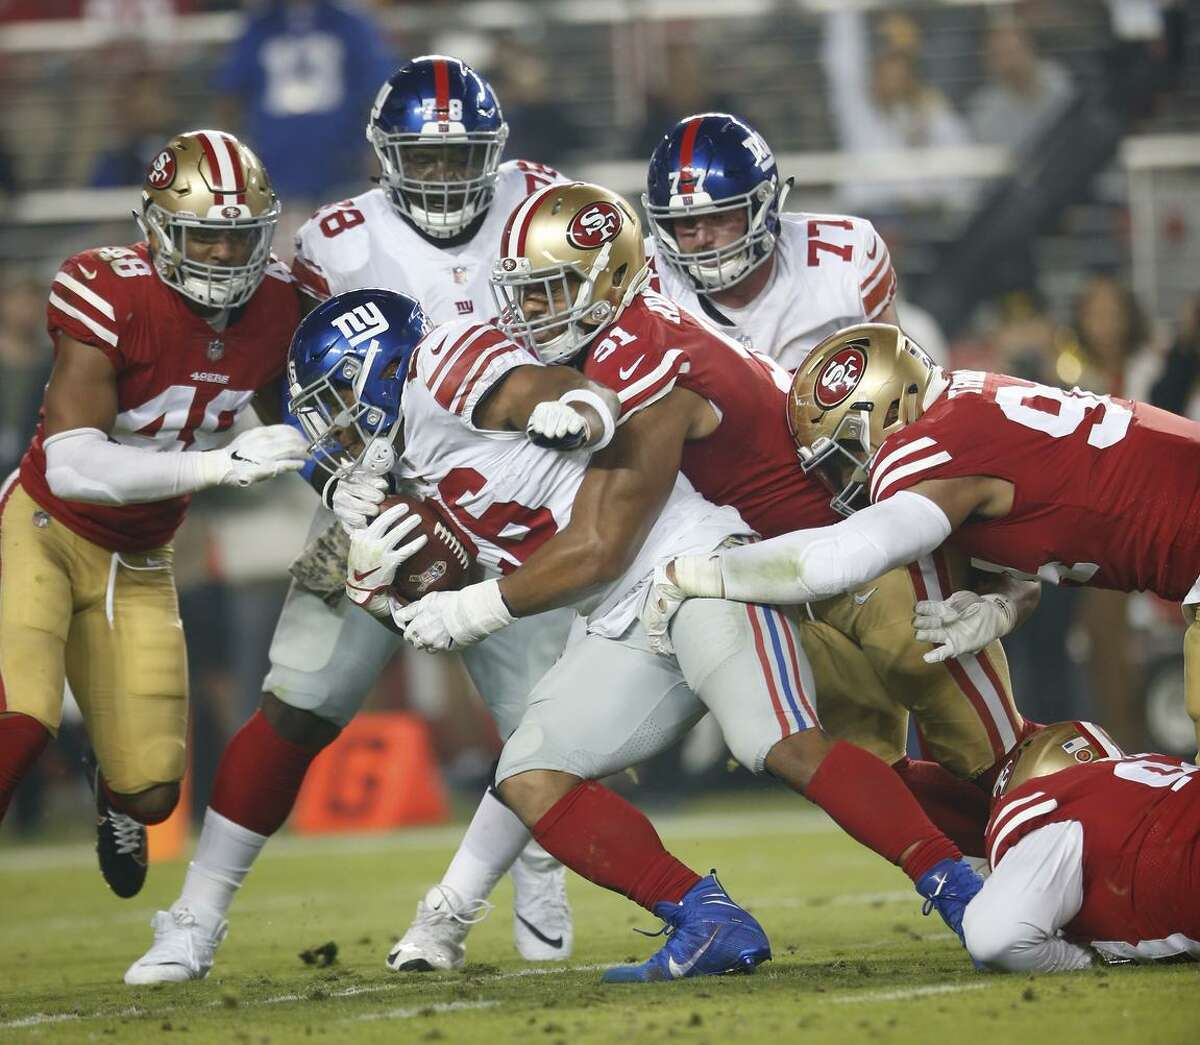 49ers defensive linemen Arik Armstead (91) and Solomon Thomas (right) tackle Giants rookie running back Saquon Barkley during a game at Levi's Stadium on Nov. 11. The defensive line is one area that general manager John Lynch says he'd like to improve.